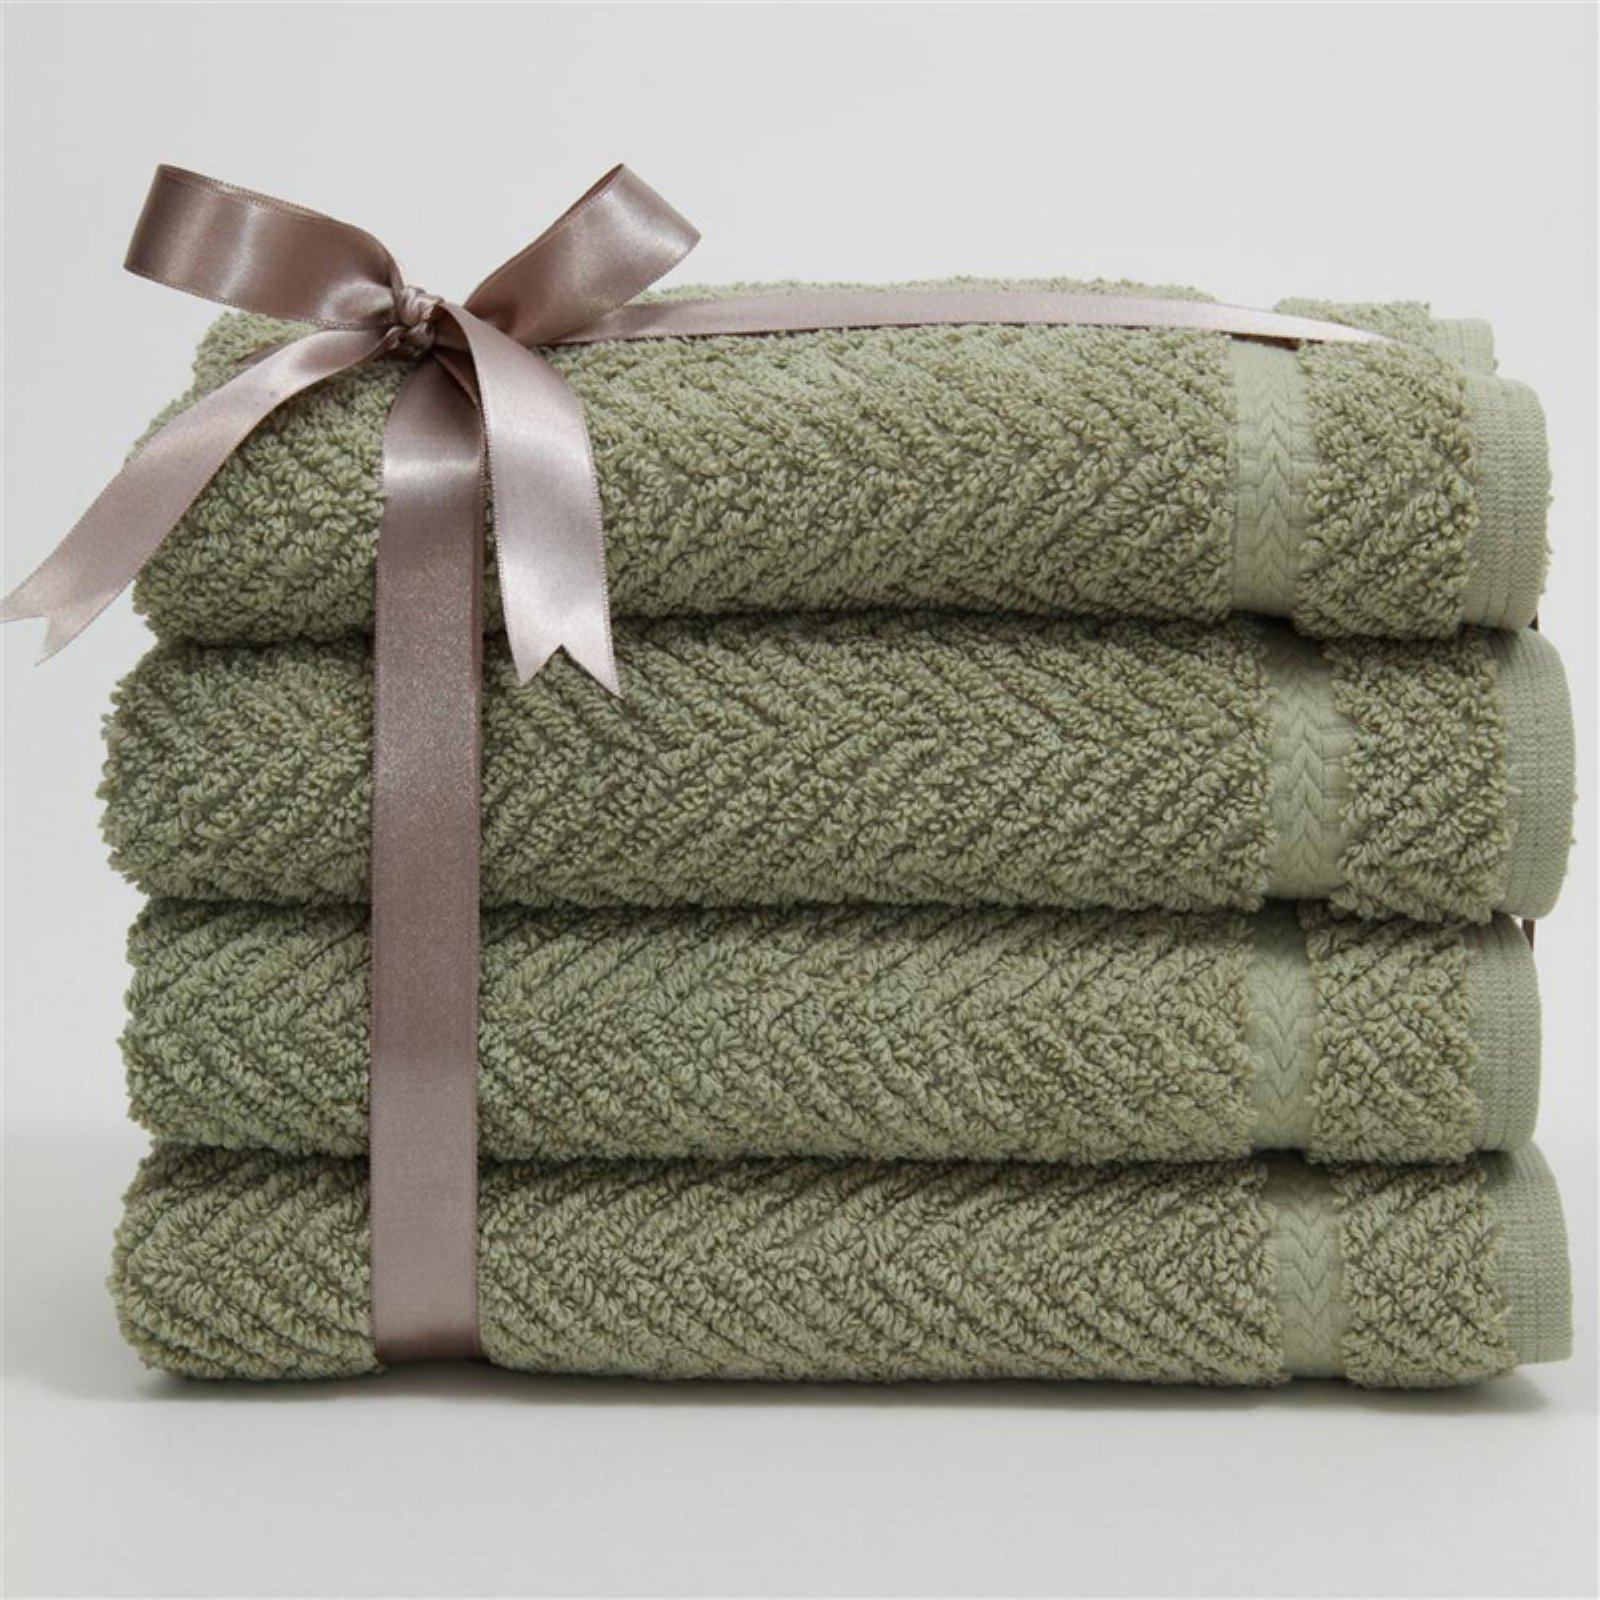 Luxury Hotel & Spa Herringbone Weave 100%Turkish Cotton Hand Towels - Set of 4